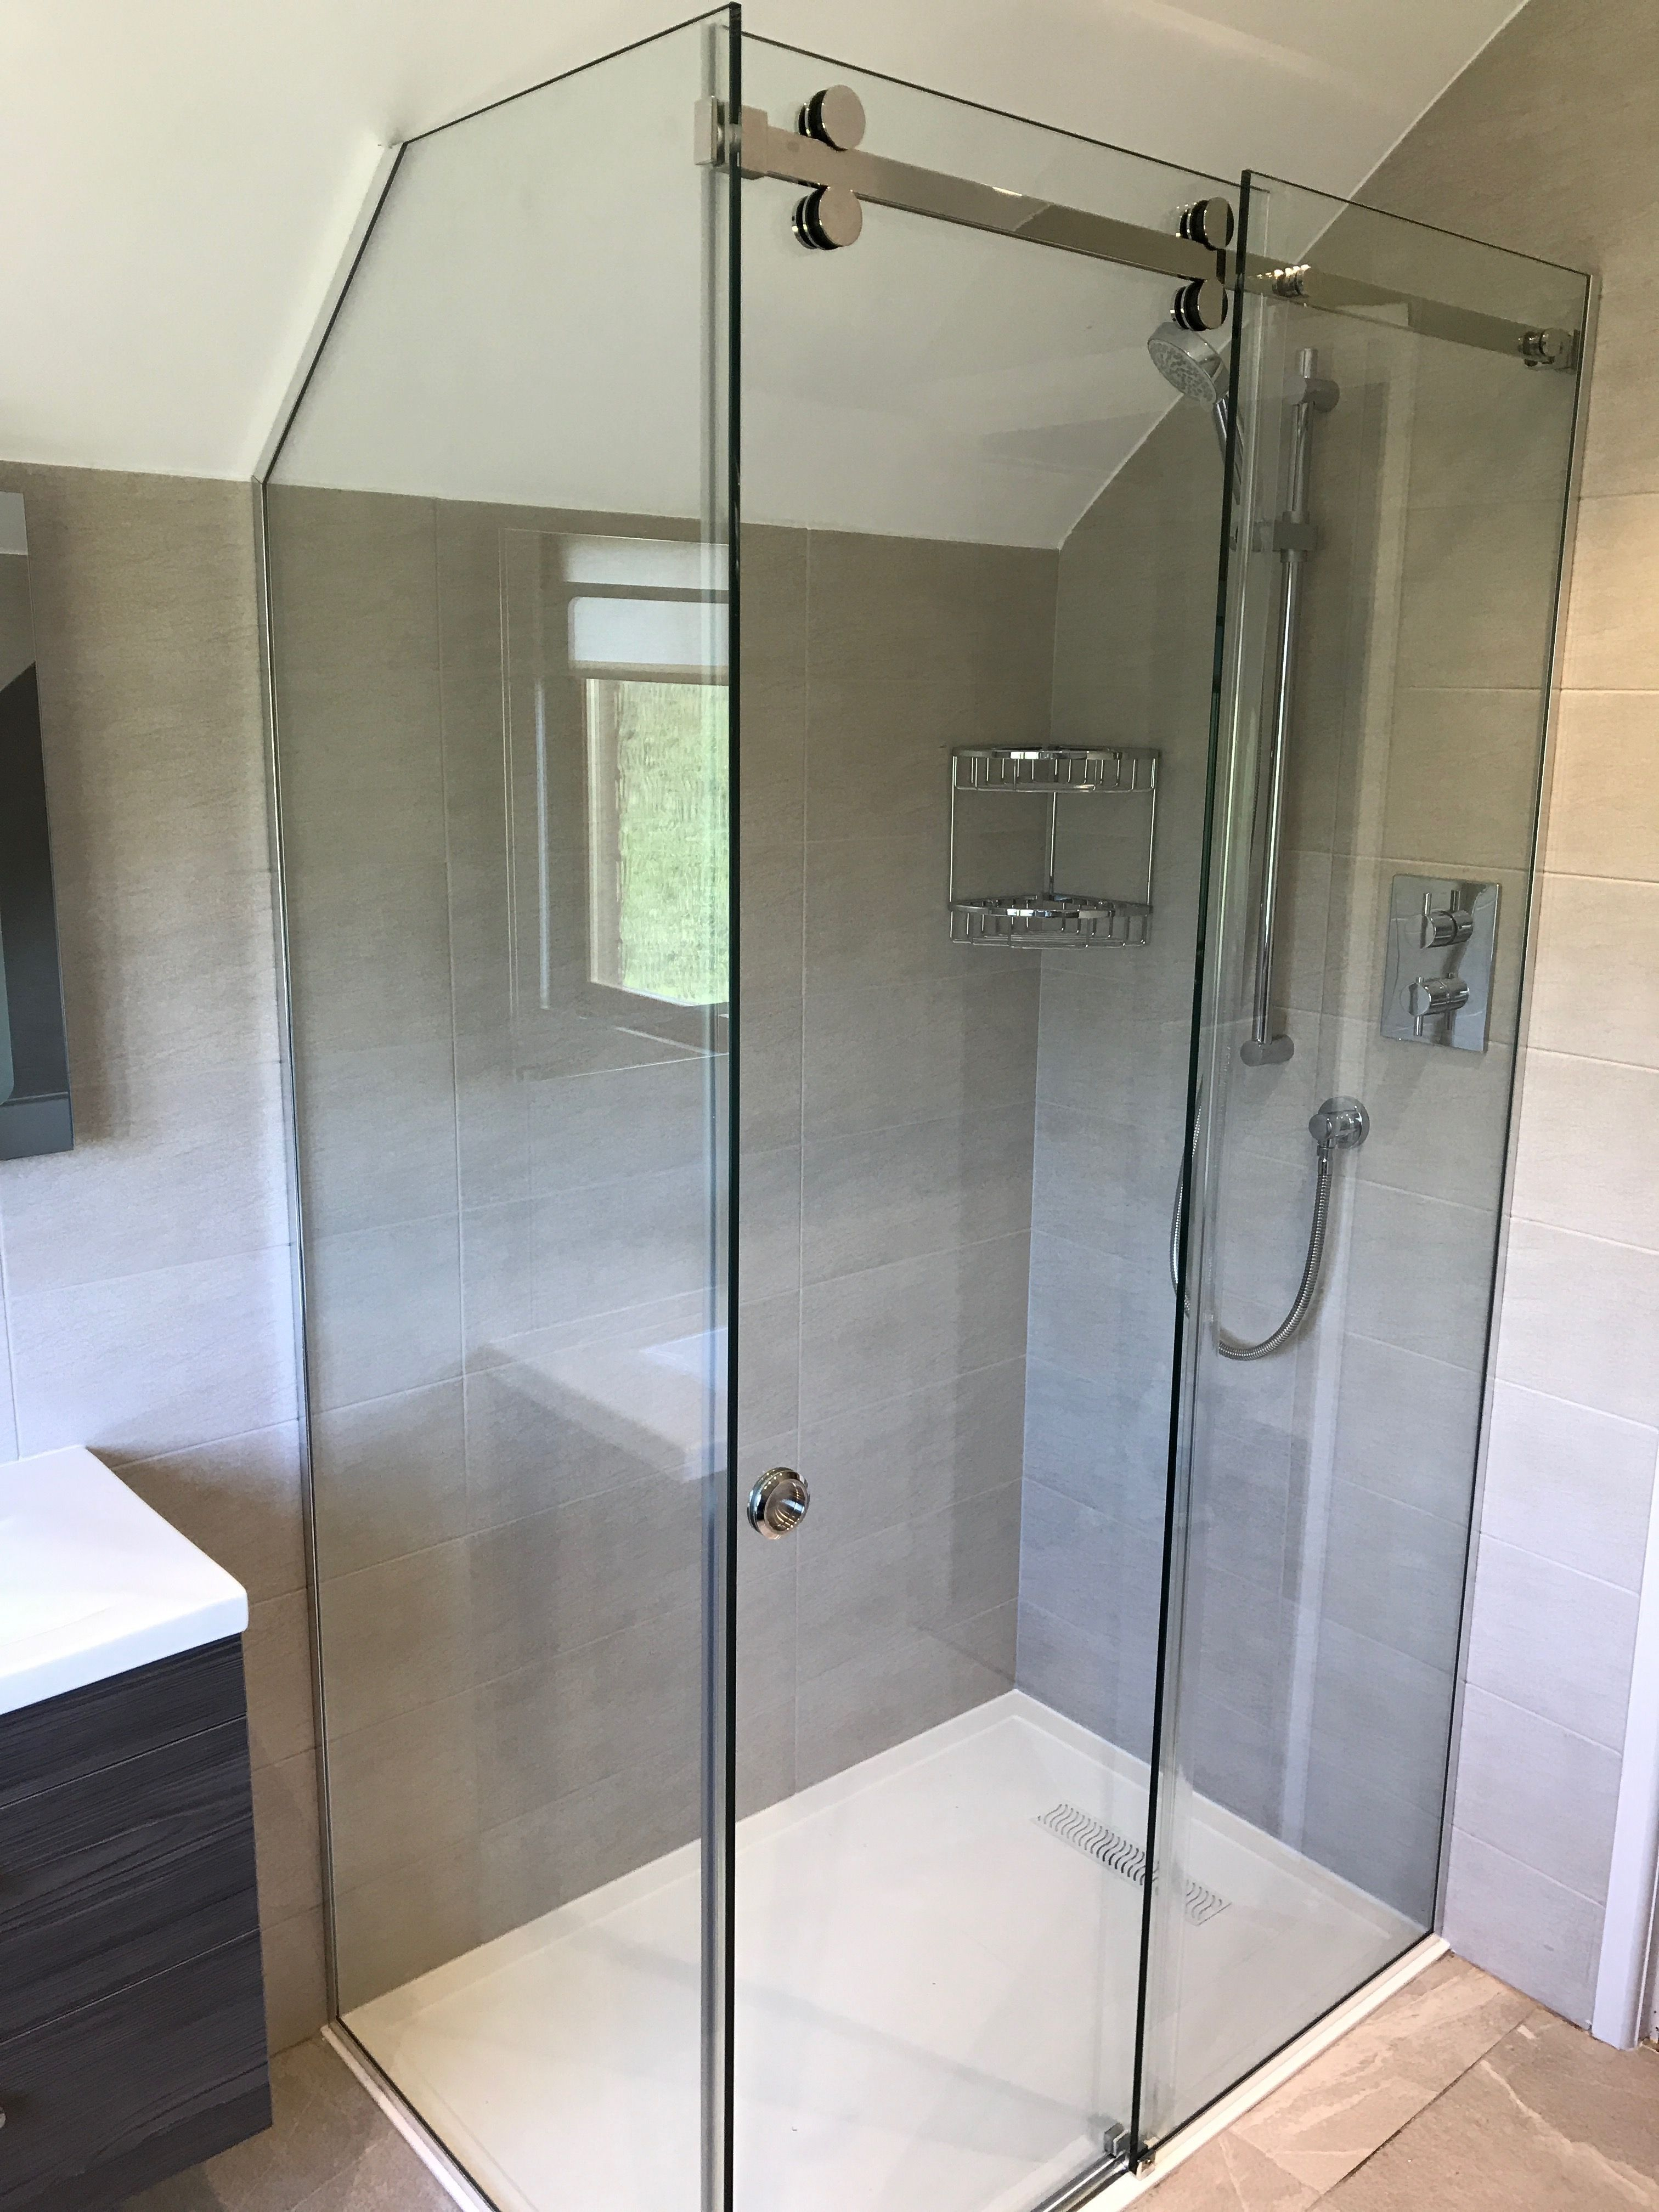 Reduced Height Sliding Shower Enclosure And Shaped To Angled